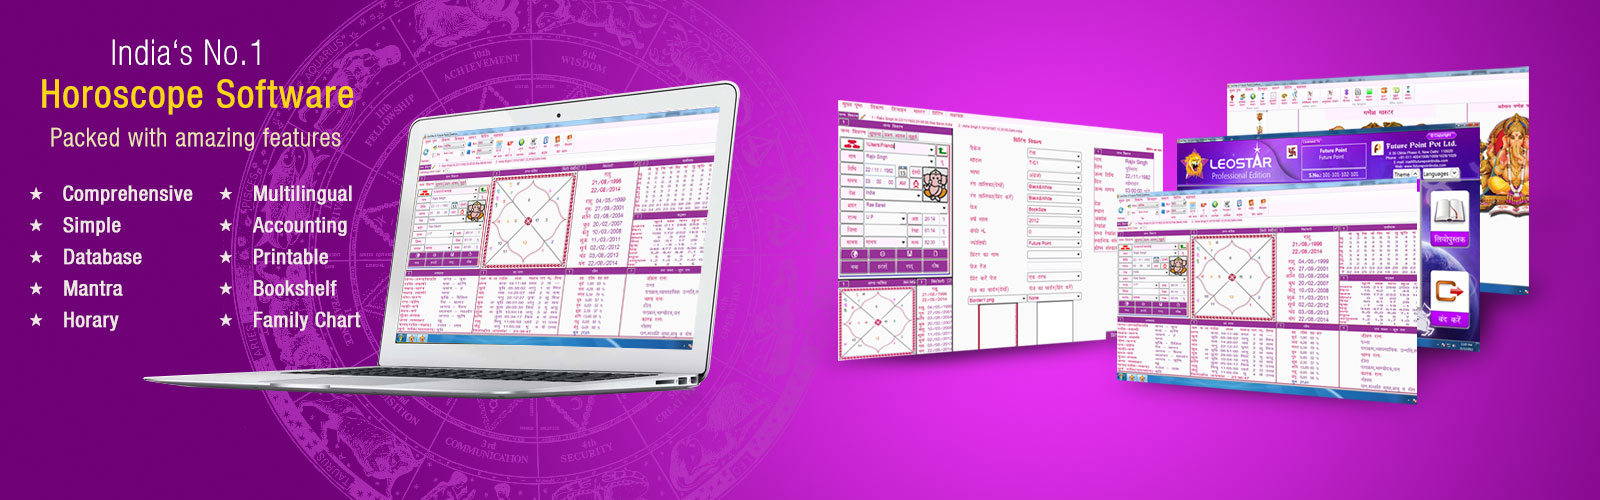 No.1 Hroscope Making & Matching kundli software Leostar contains best of astrology features